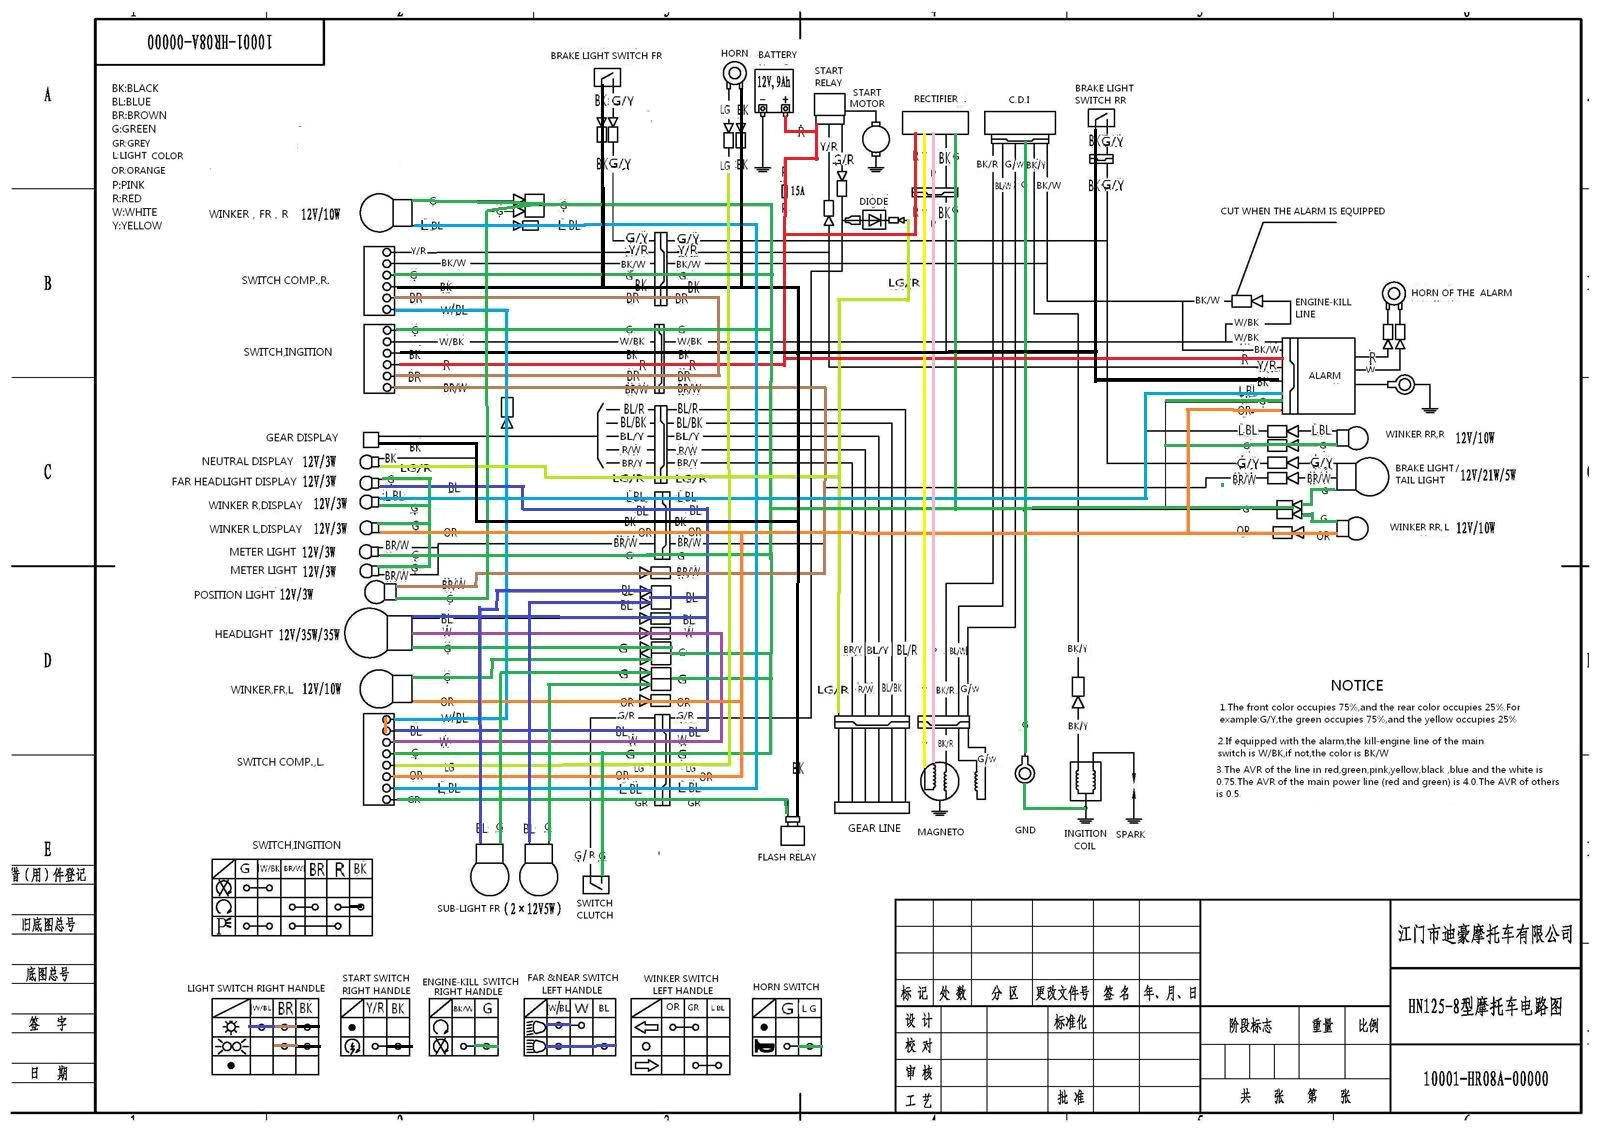 Kymco Agility 50 Wiring Diagram Famous Lifan 125cc Wiring Diagram Ideas Electrical and